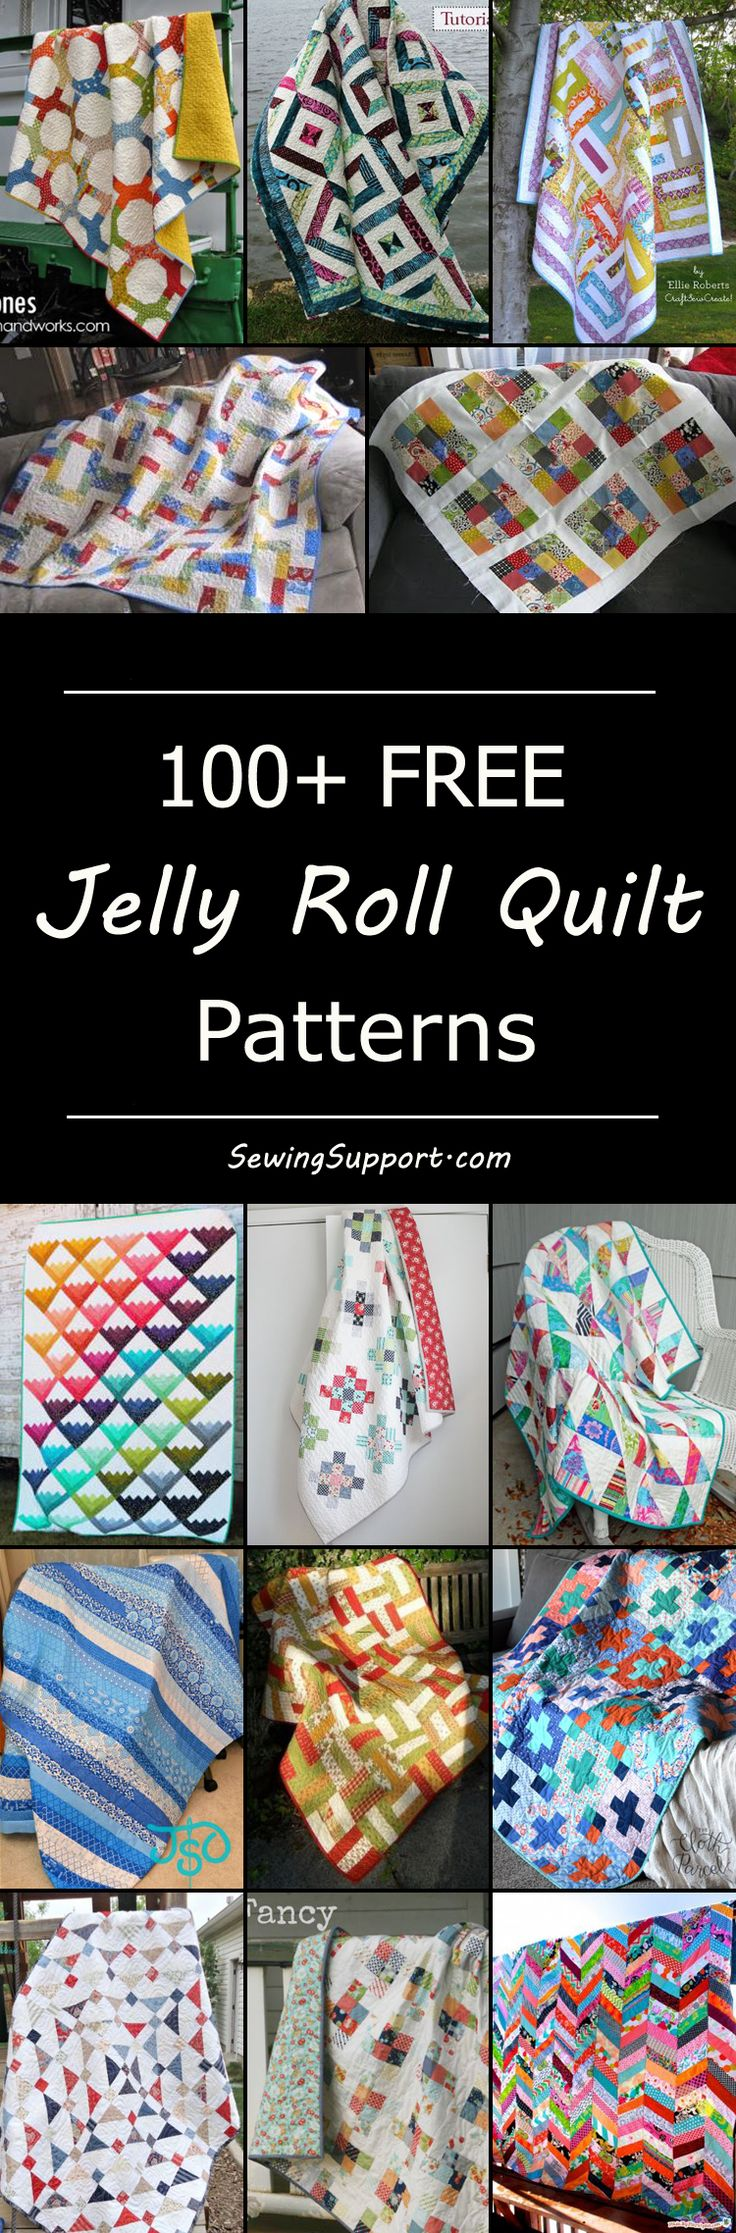 Over 100 free jelly roll quilt patterns & tutorials. Quilting ideas and projects using fabric strips. Many simple and easy designs.